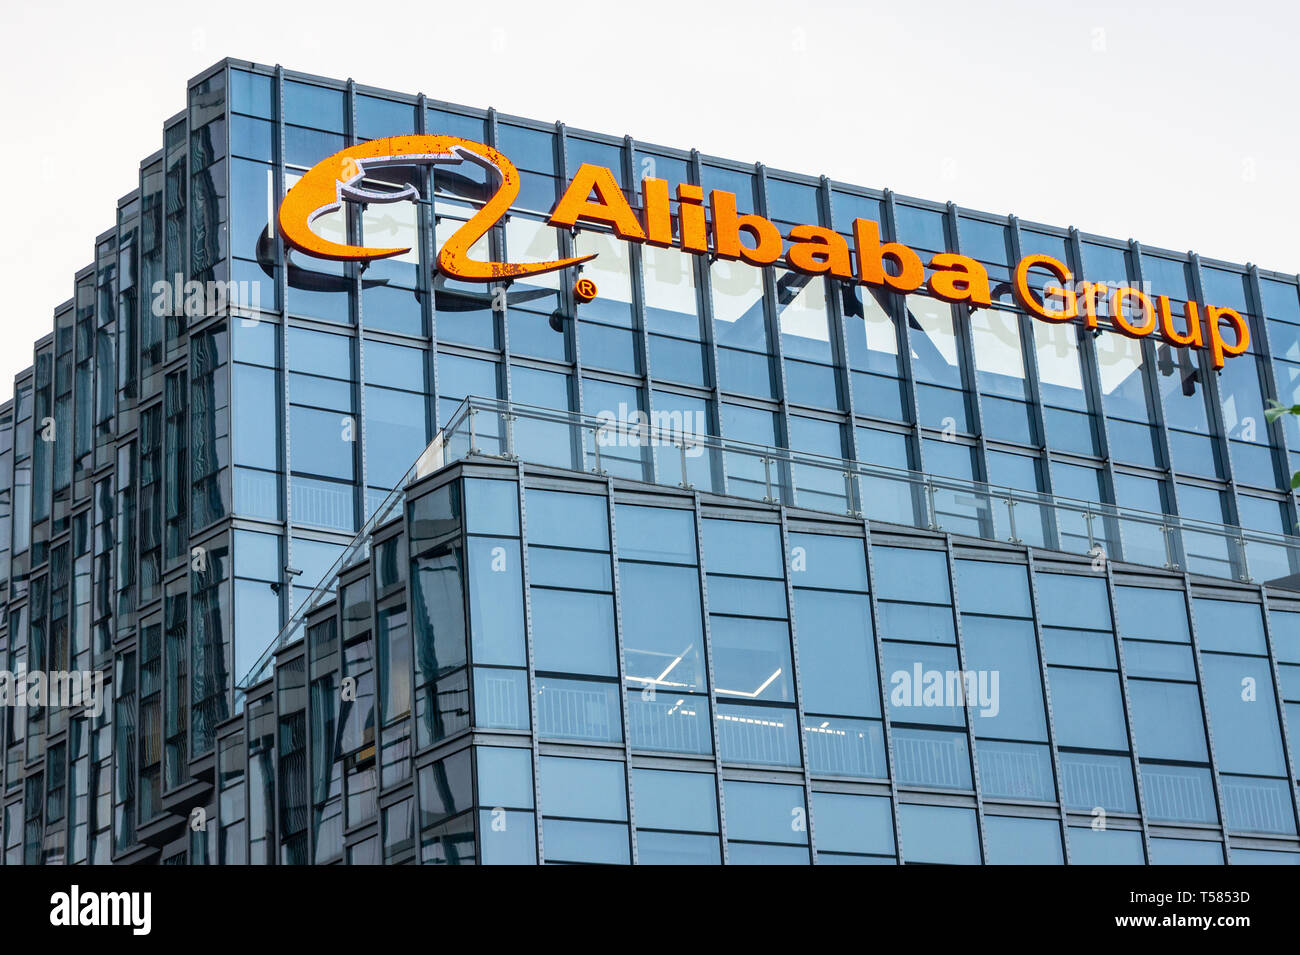 Alibaba Name And Logo On A Building In Shenzhen China Stock Photo Alamy Any other use is not allowed without written permission of alibaba group. https www alamy com alibaba name and logo on a building in shenzhen china image244198065 html